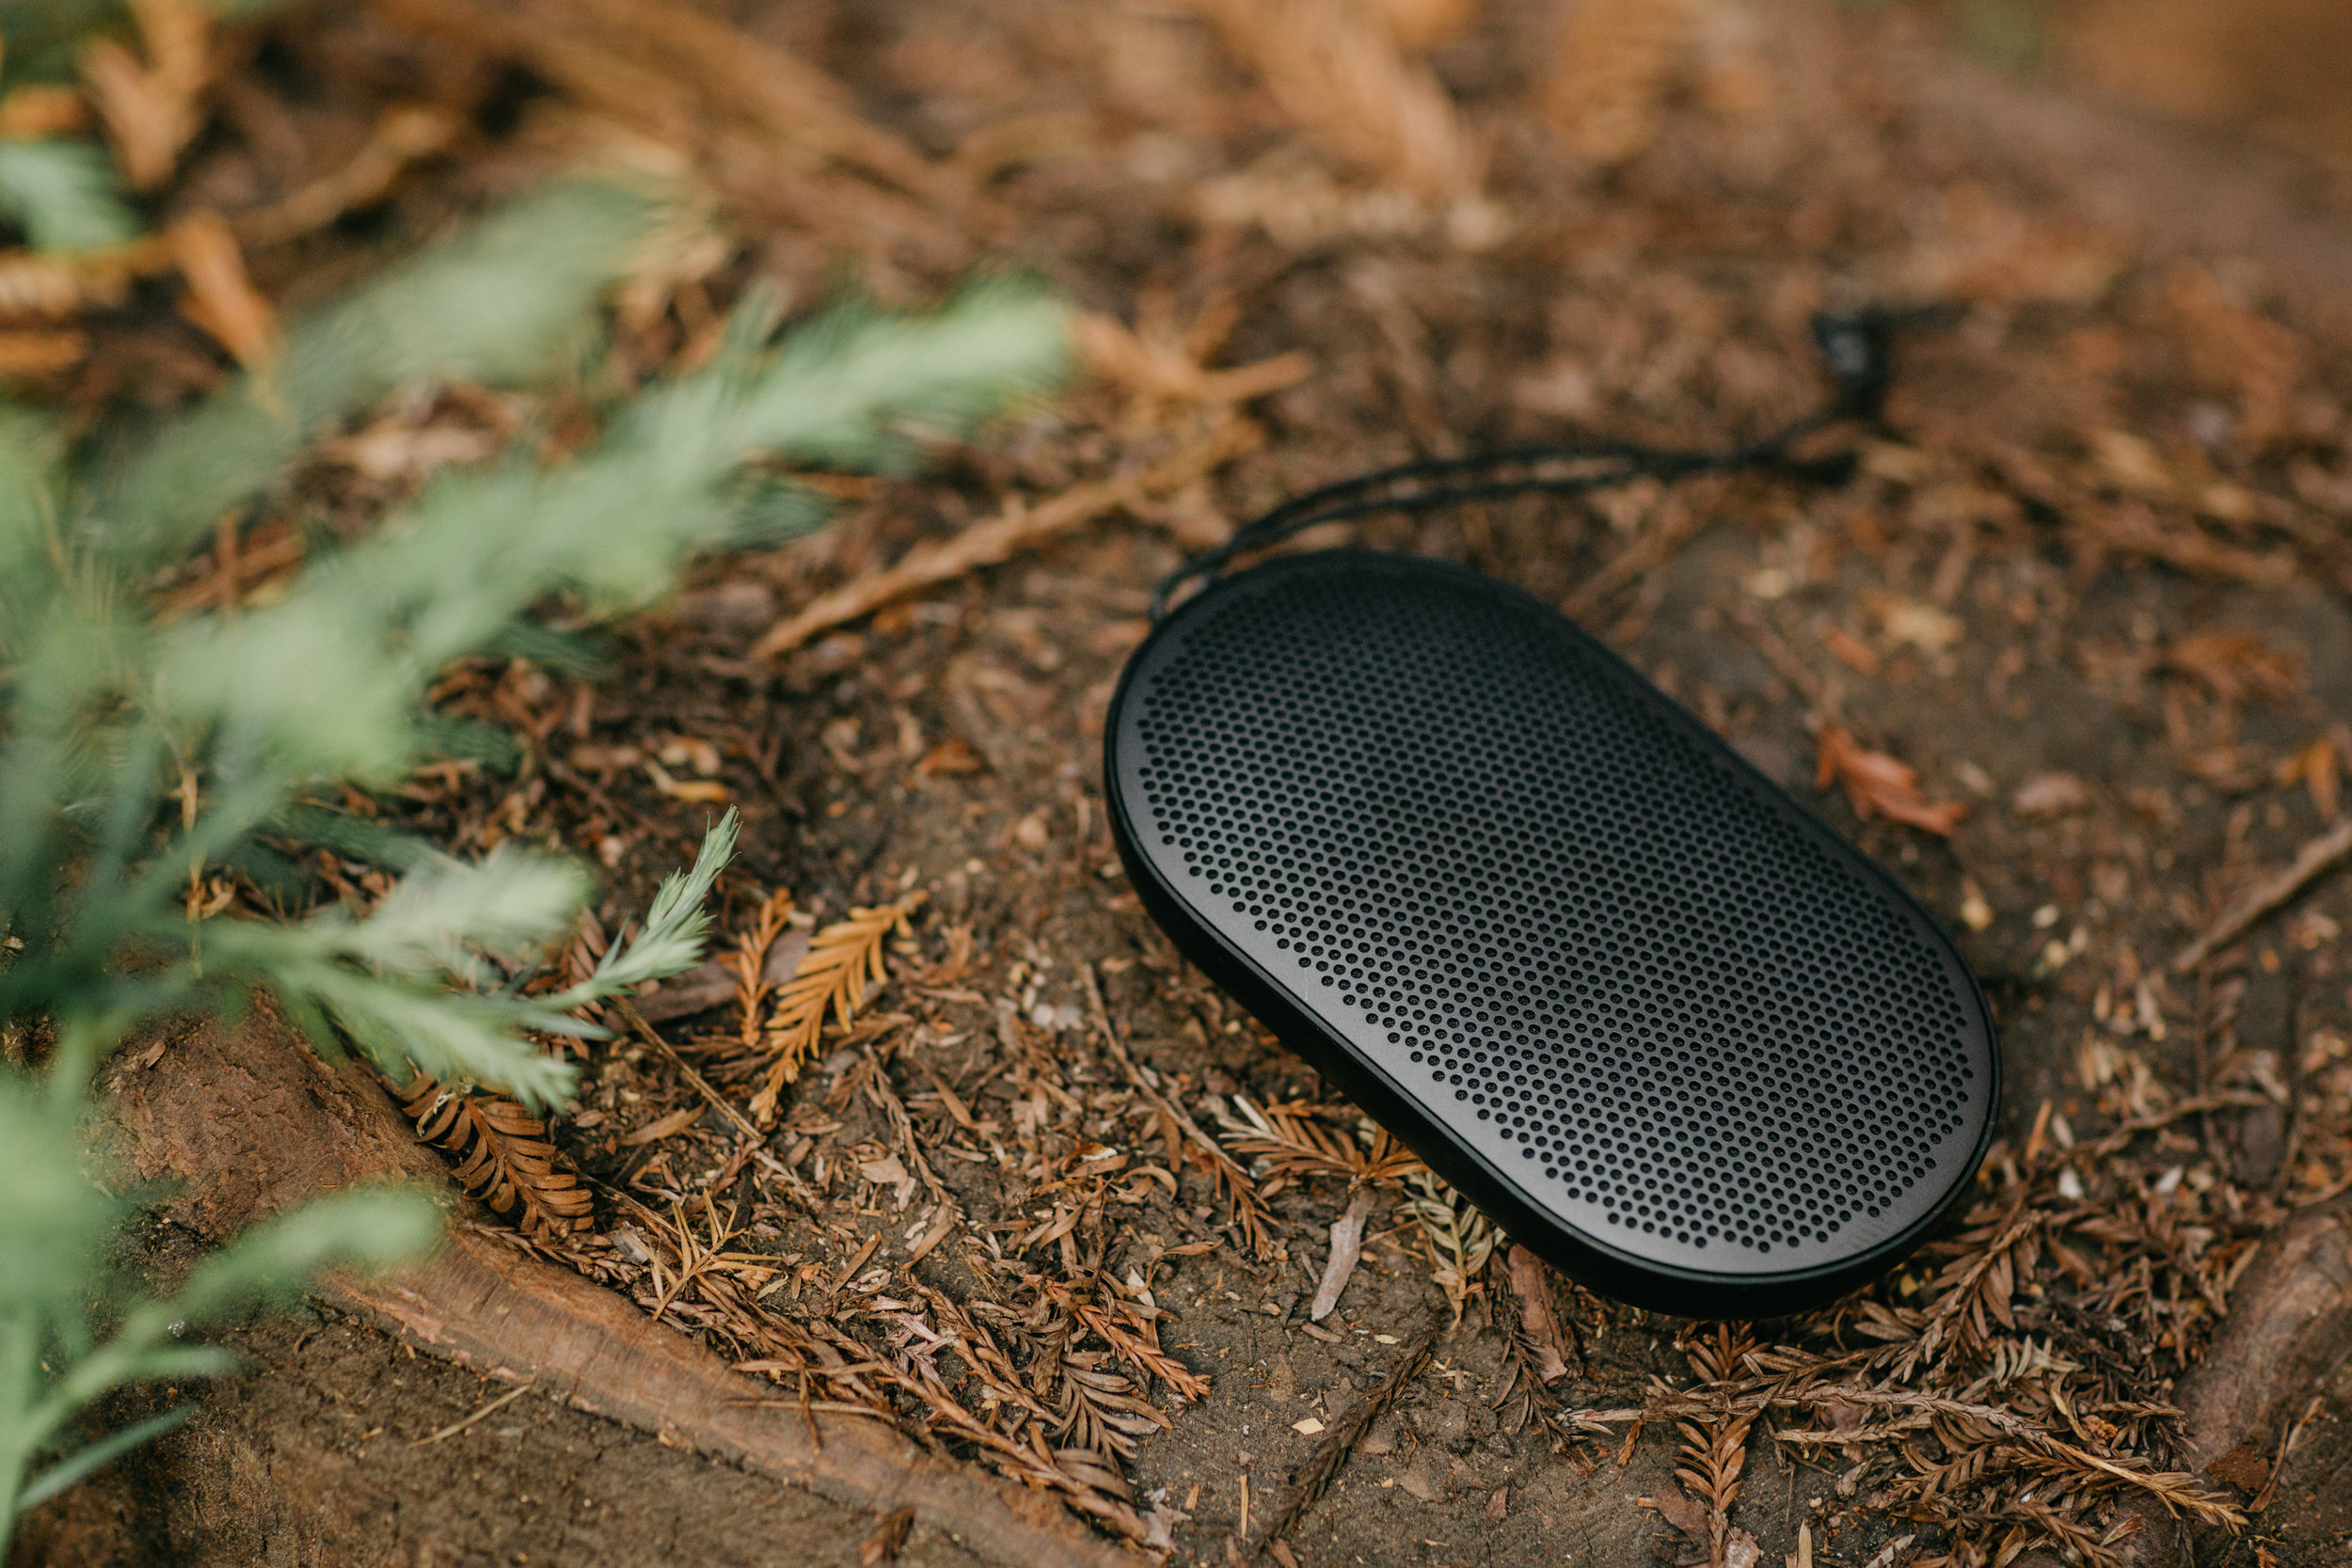 - Splash and dust resistant design that fits anywhere